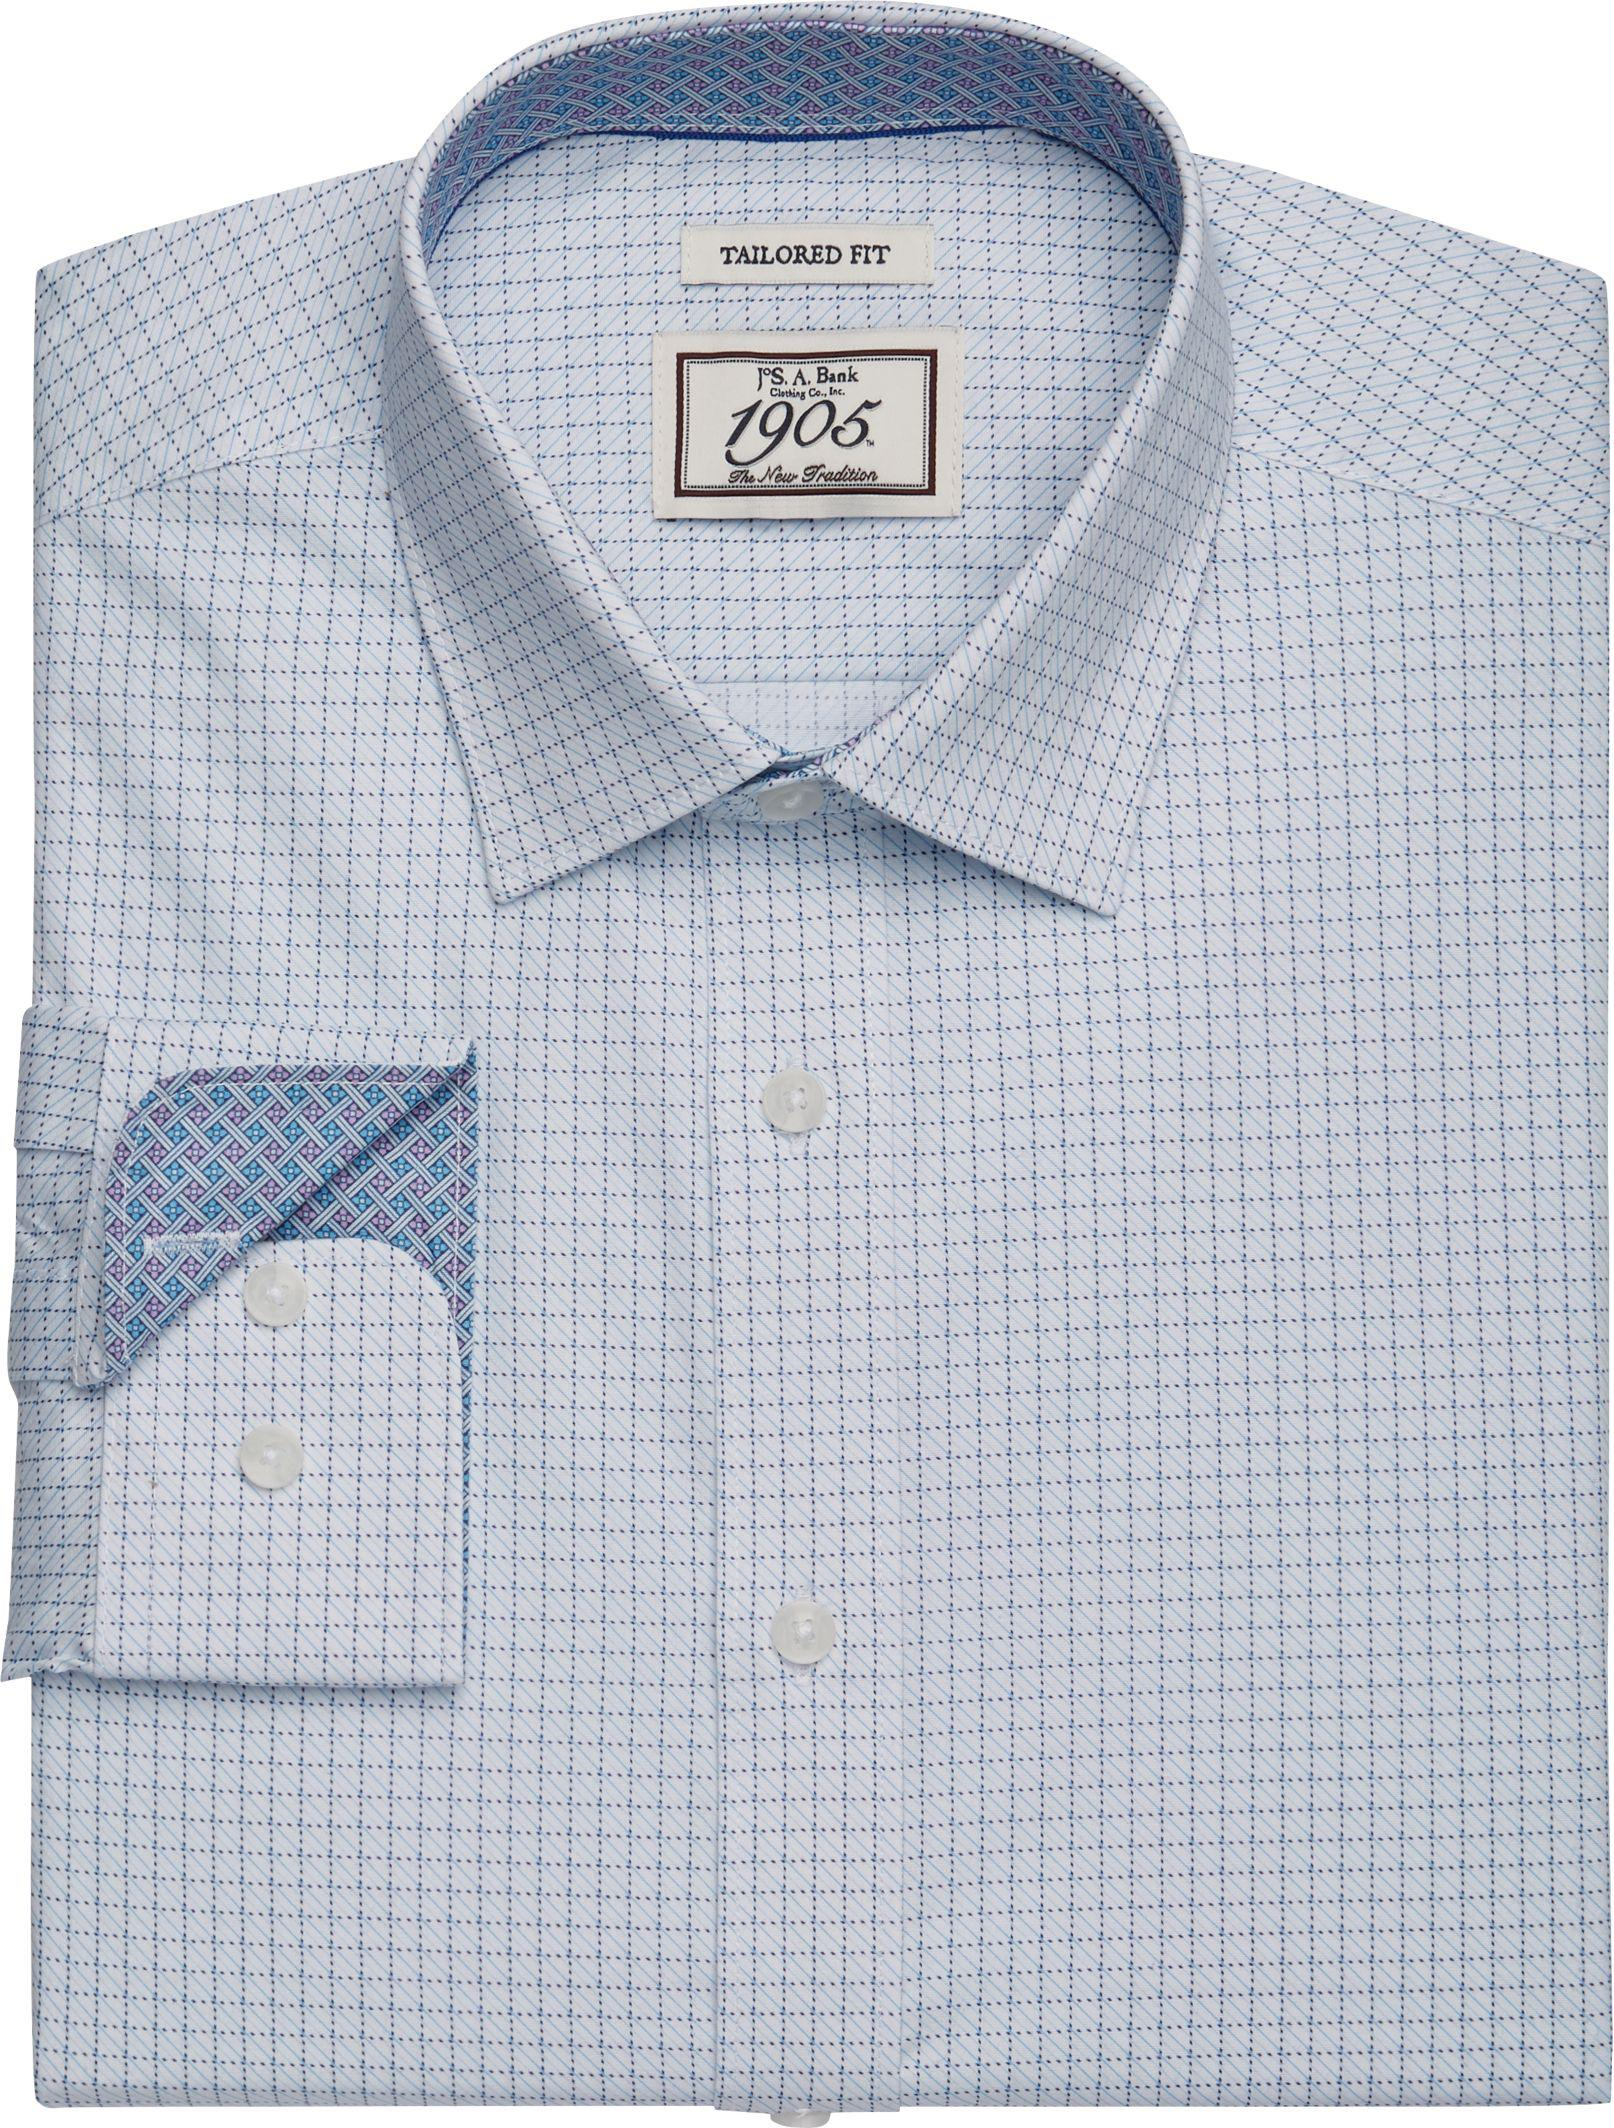 Lyst Jos A Bank 1905 Collection Tailored Fit Spread Collar Grid